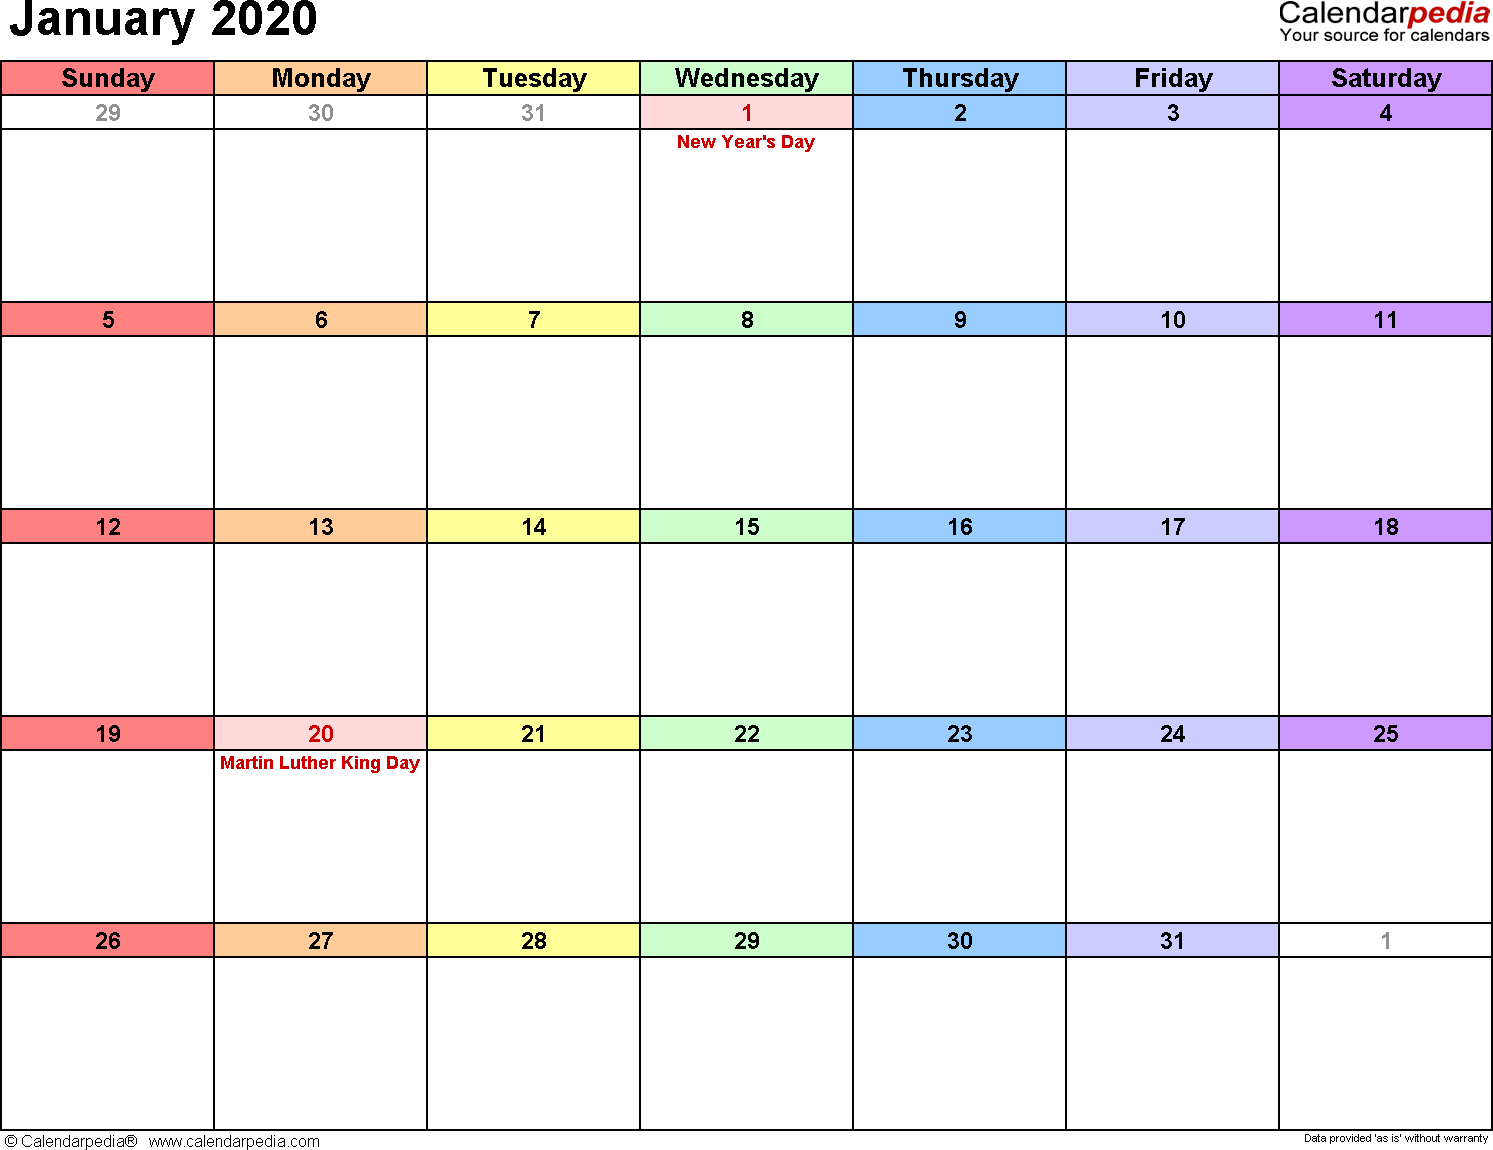 2020 Calendar For January January 2020 Calendars for Word, Excel & PDF